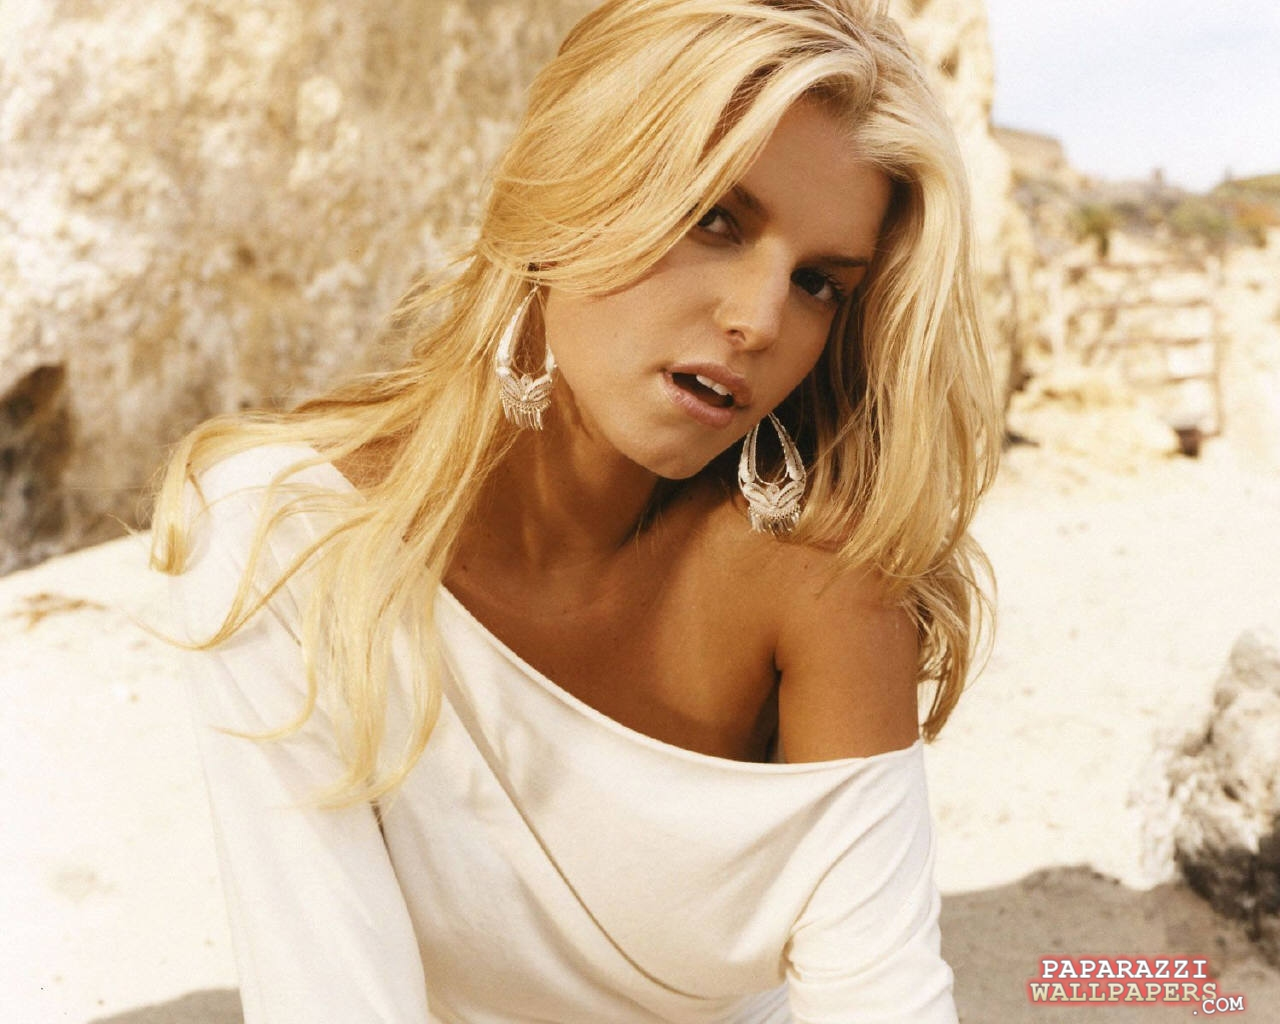 jessica simpson wallpaper 4 702184jpg 1280x1024